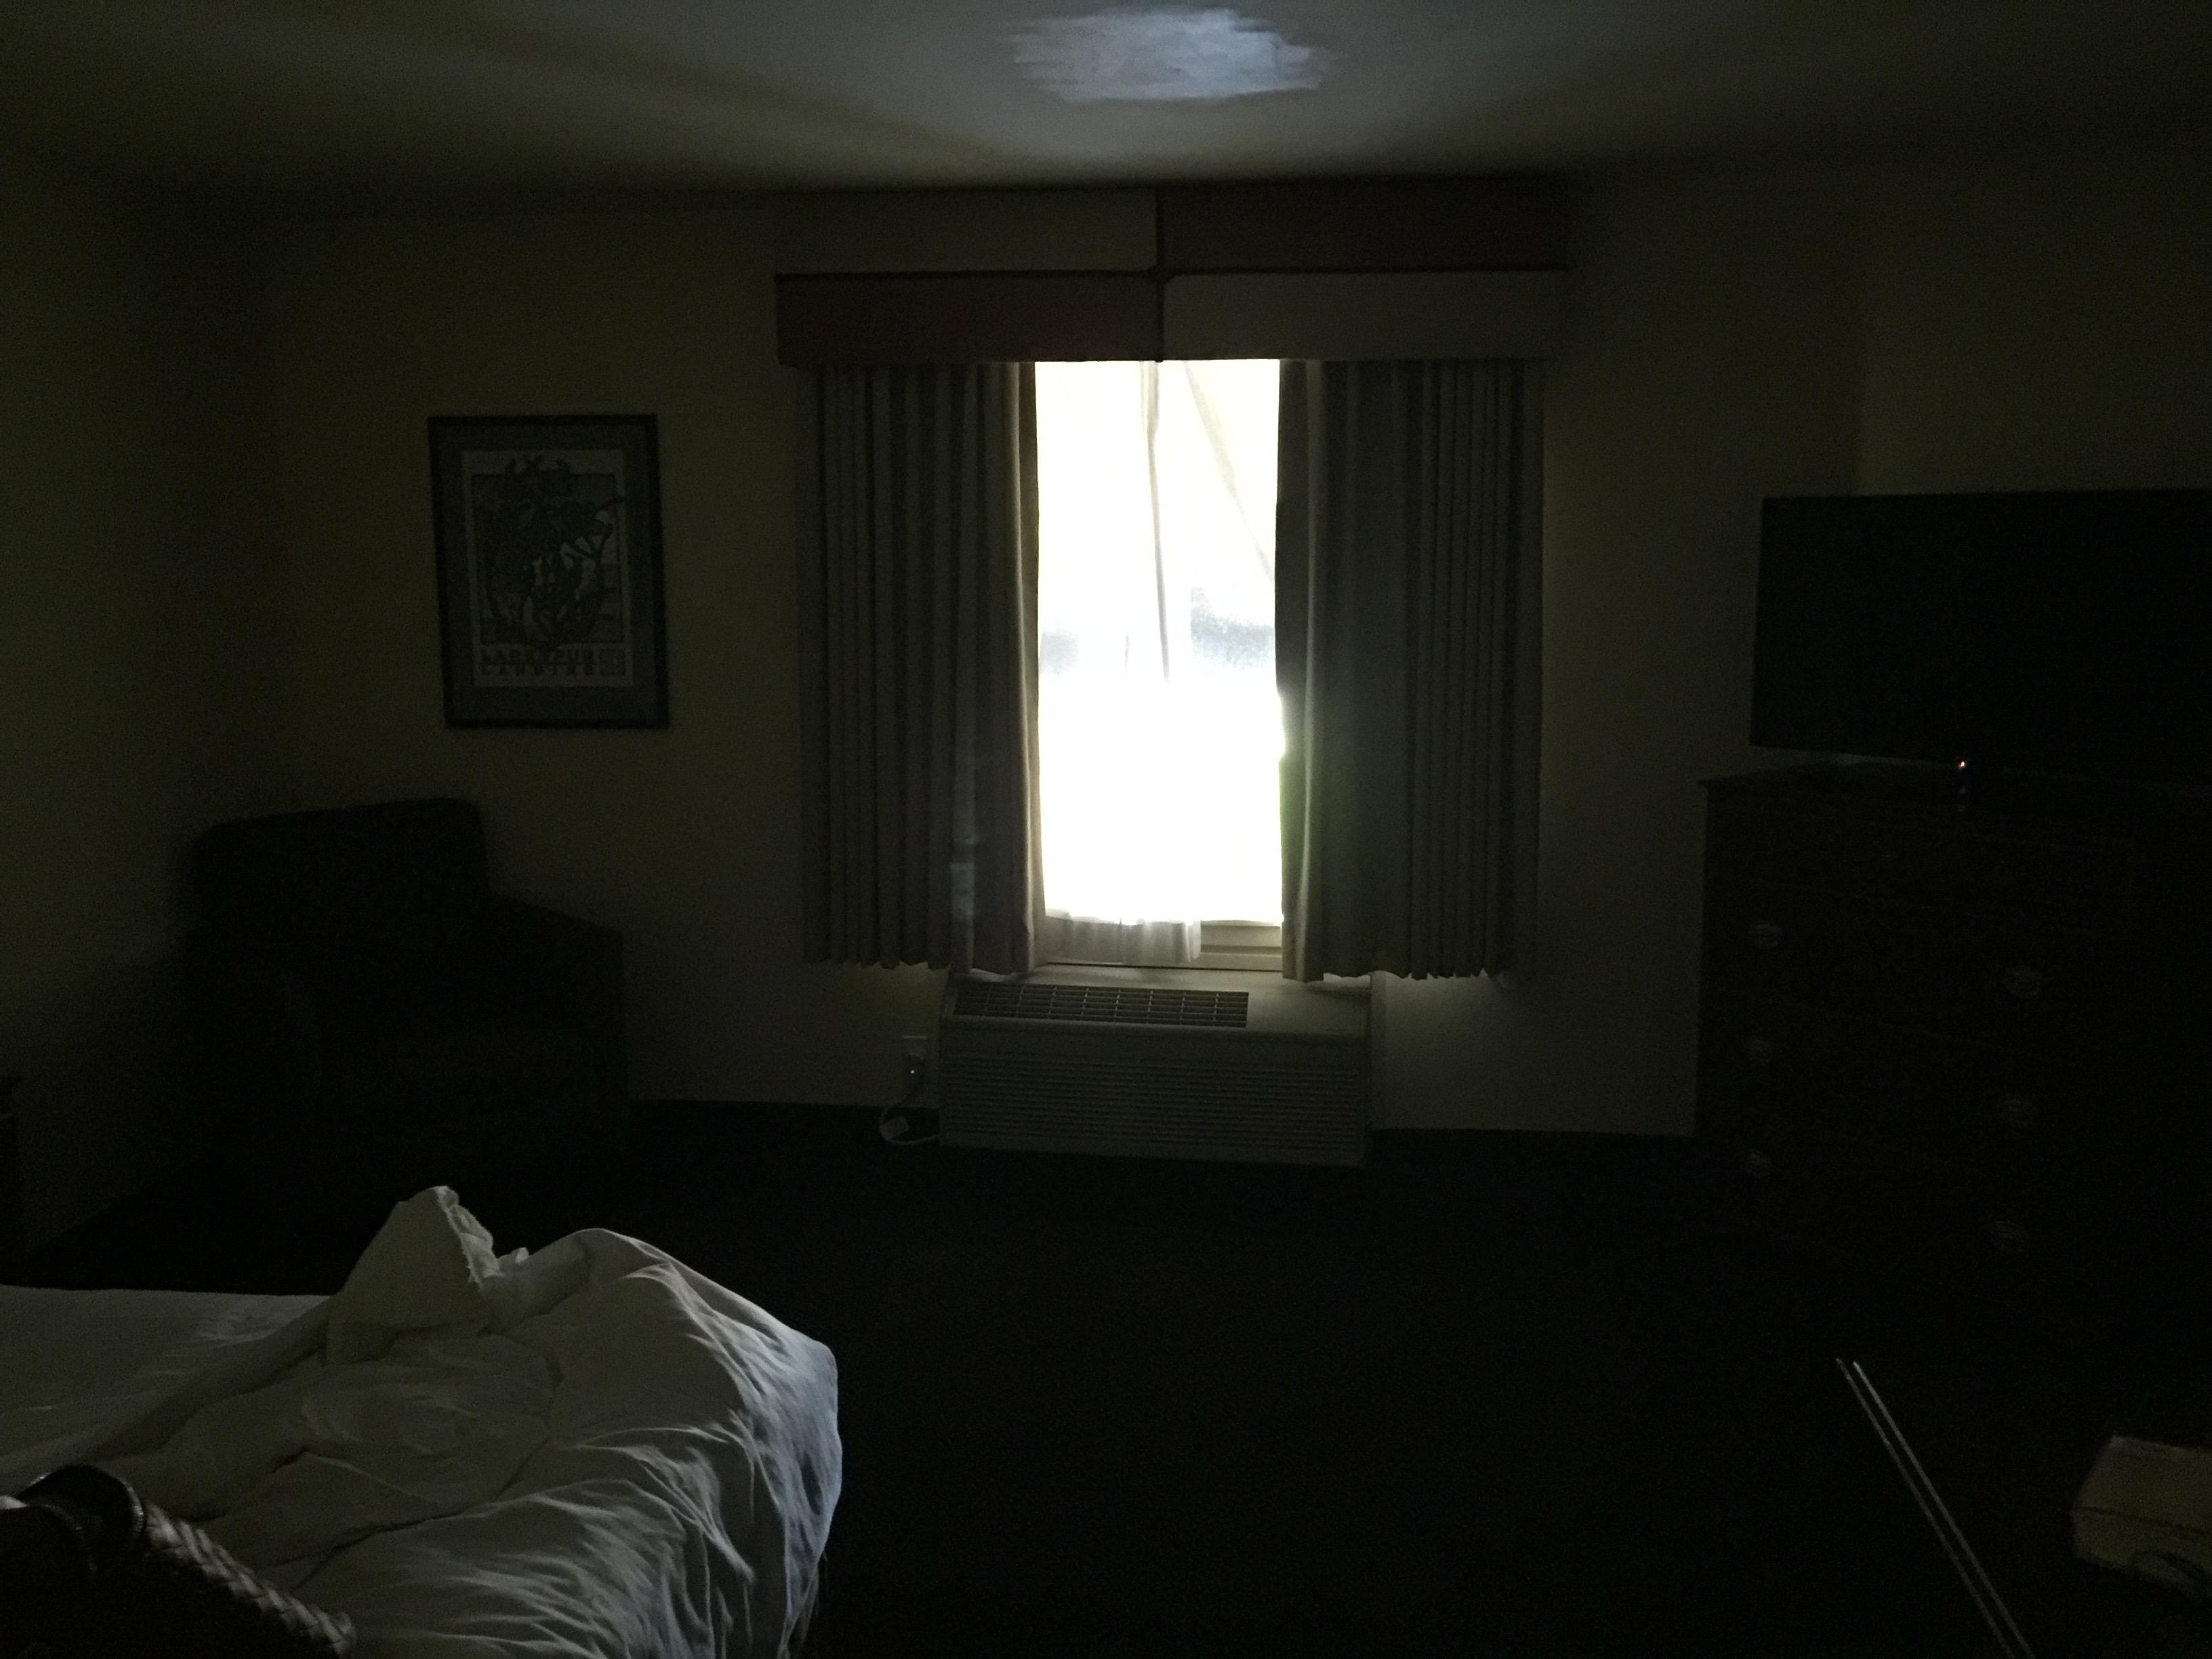 My room in the MIDDLE of the day